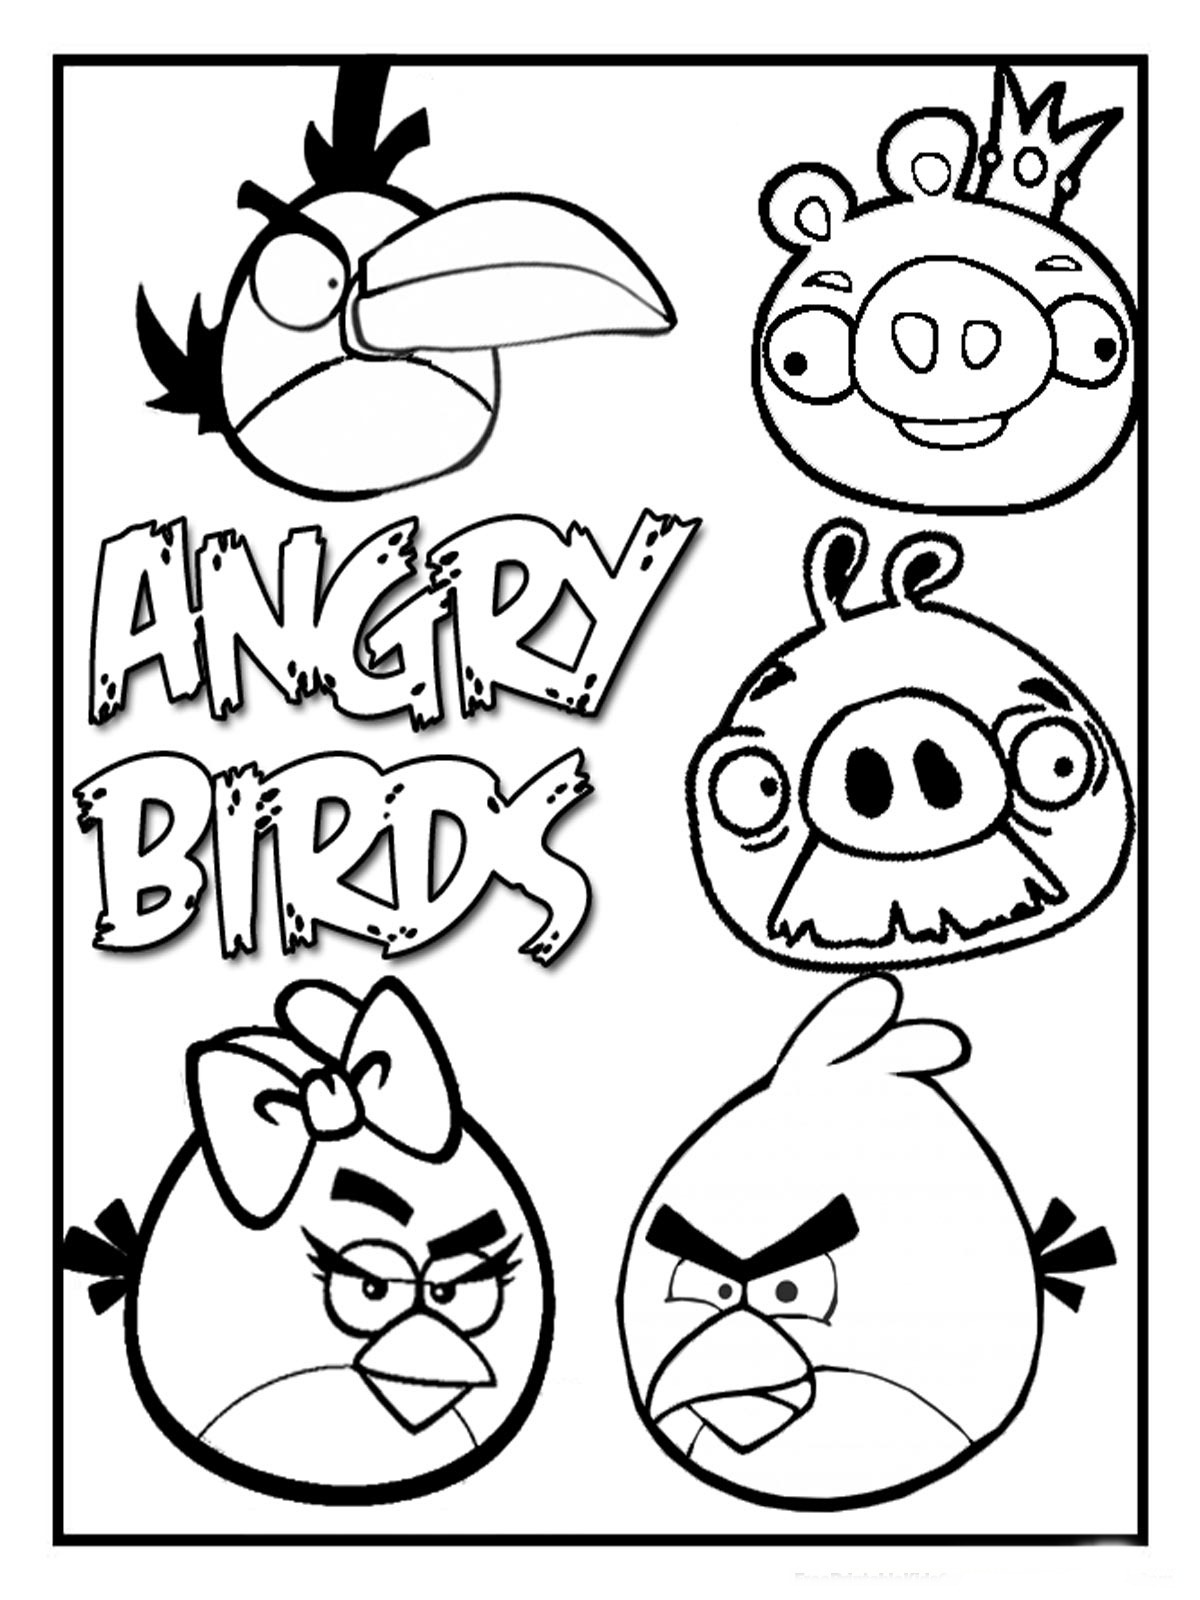 coloring pages for angry birds angry birds coloring page free printable coloring pages for pages angry birds coloring